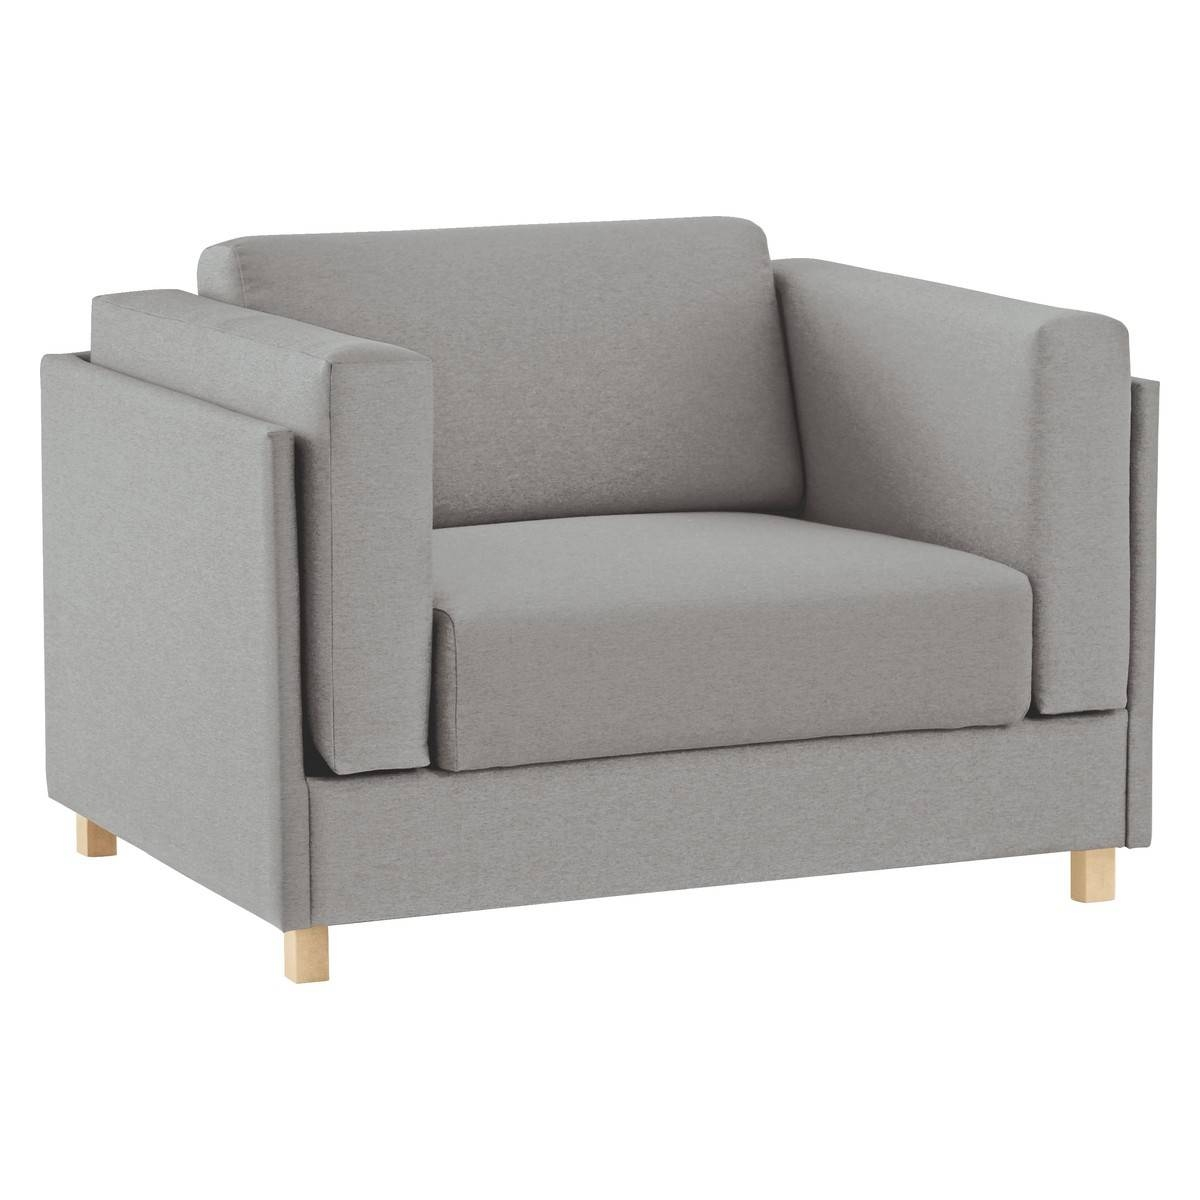 New Single Sofa Beds Uk 87 For Your Single Sofa Bed Chairs With In Cheap Single Sofa Bed Chairs (View 16 of 30)